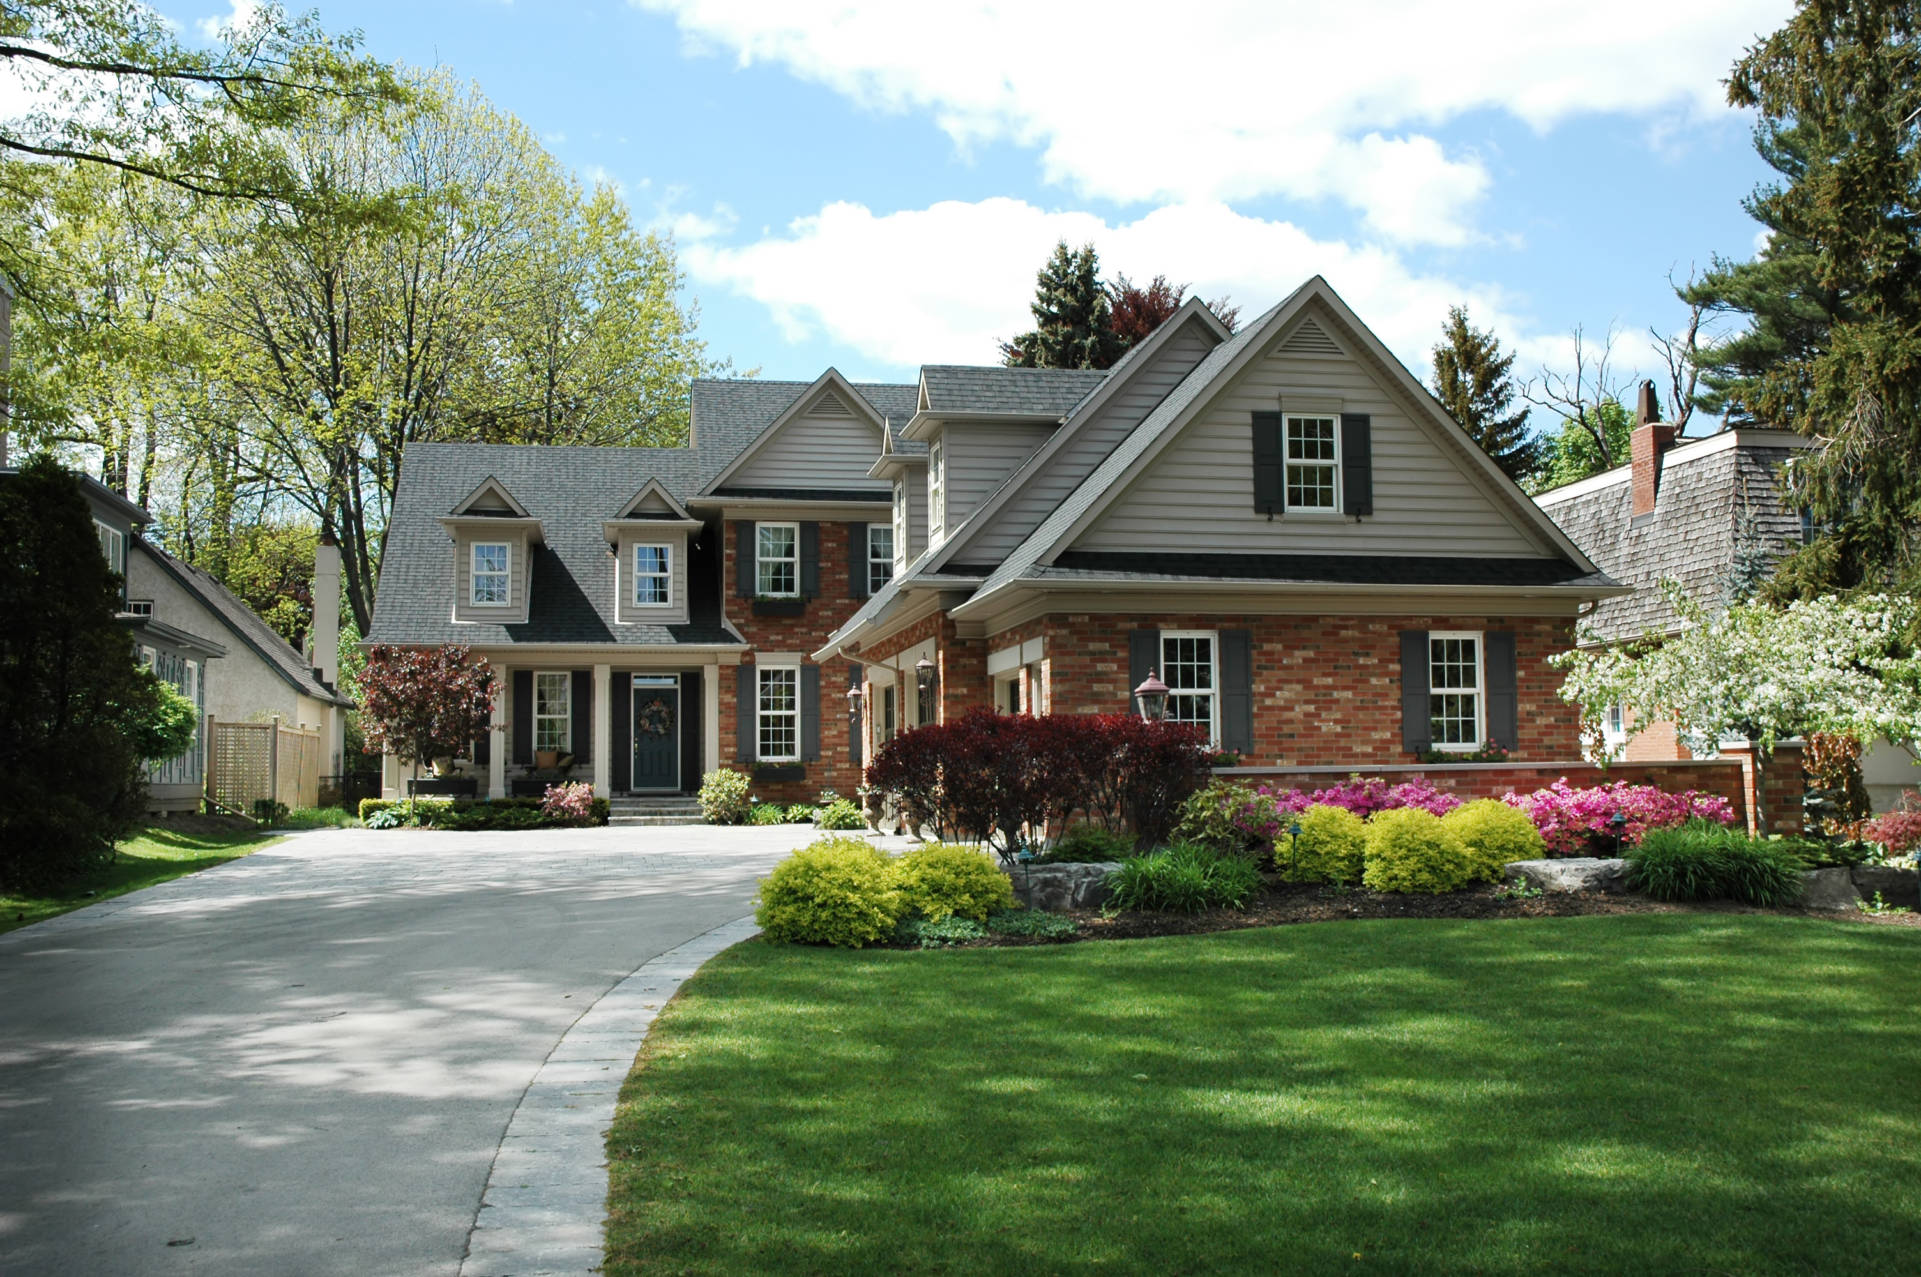 brick-front-luxury-home A & A Pest Control | Manchester, CT - Get $25  OFF Seasonal Services